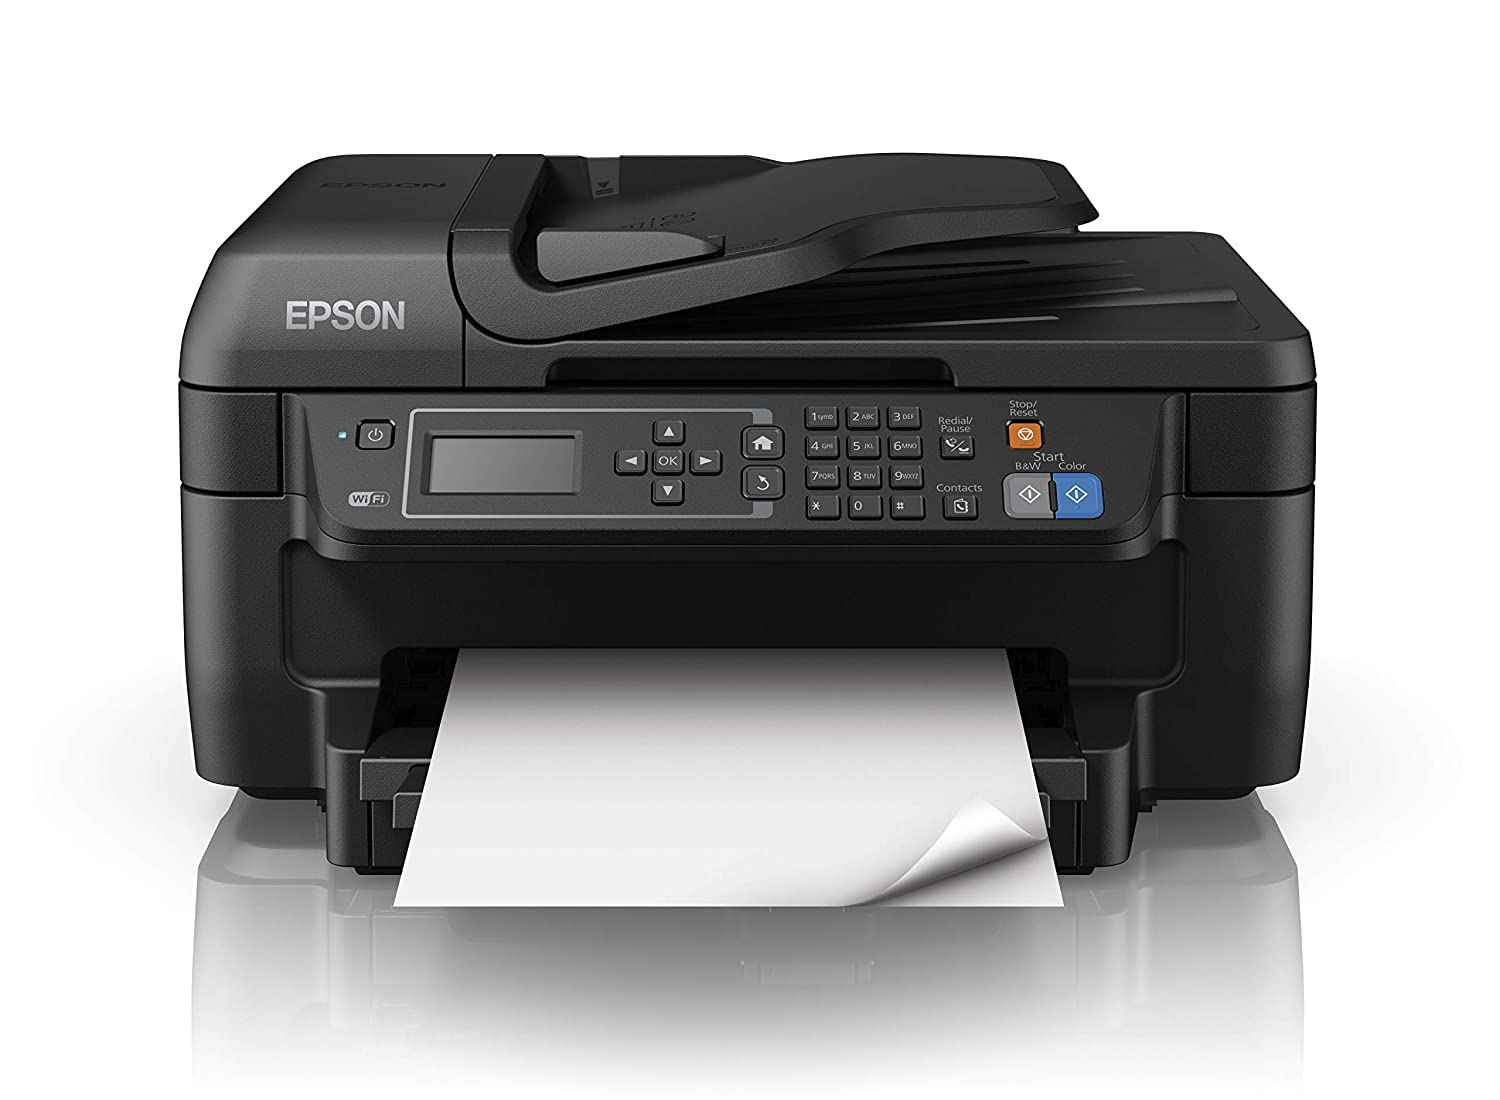 Amazon.com: Epson Workforce Wf-2750dwf 4800x1200dpi 33ppm a4 ...